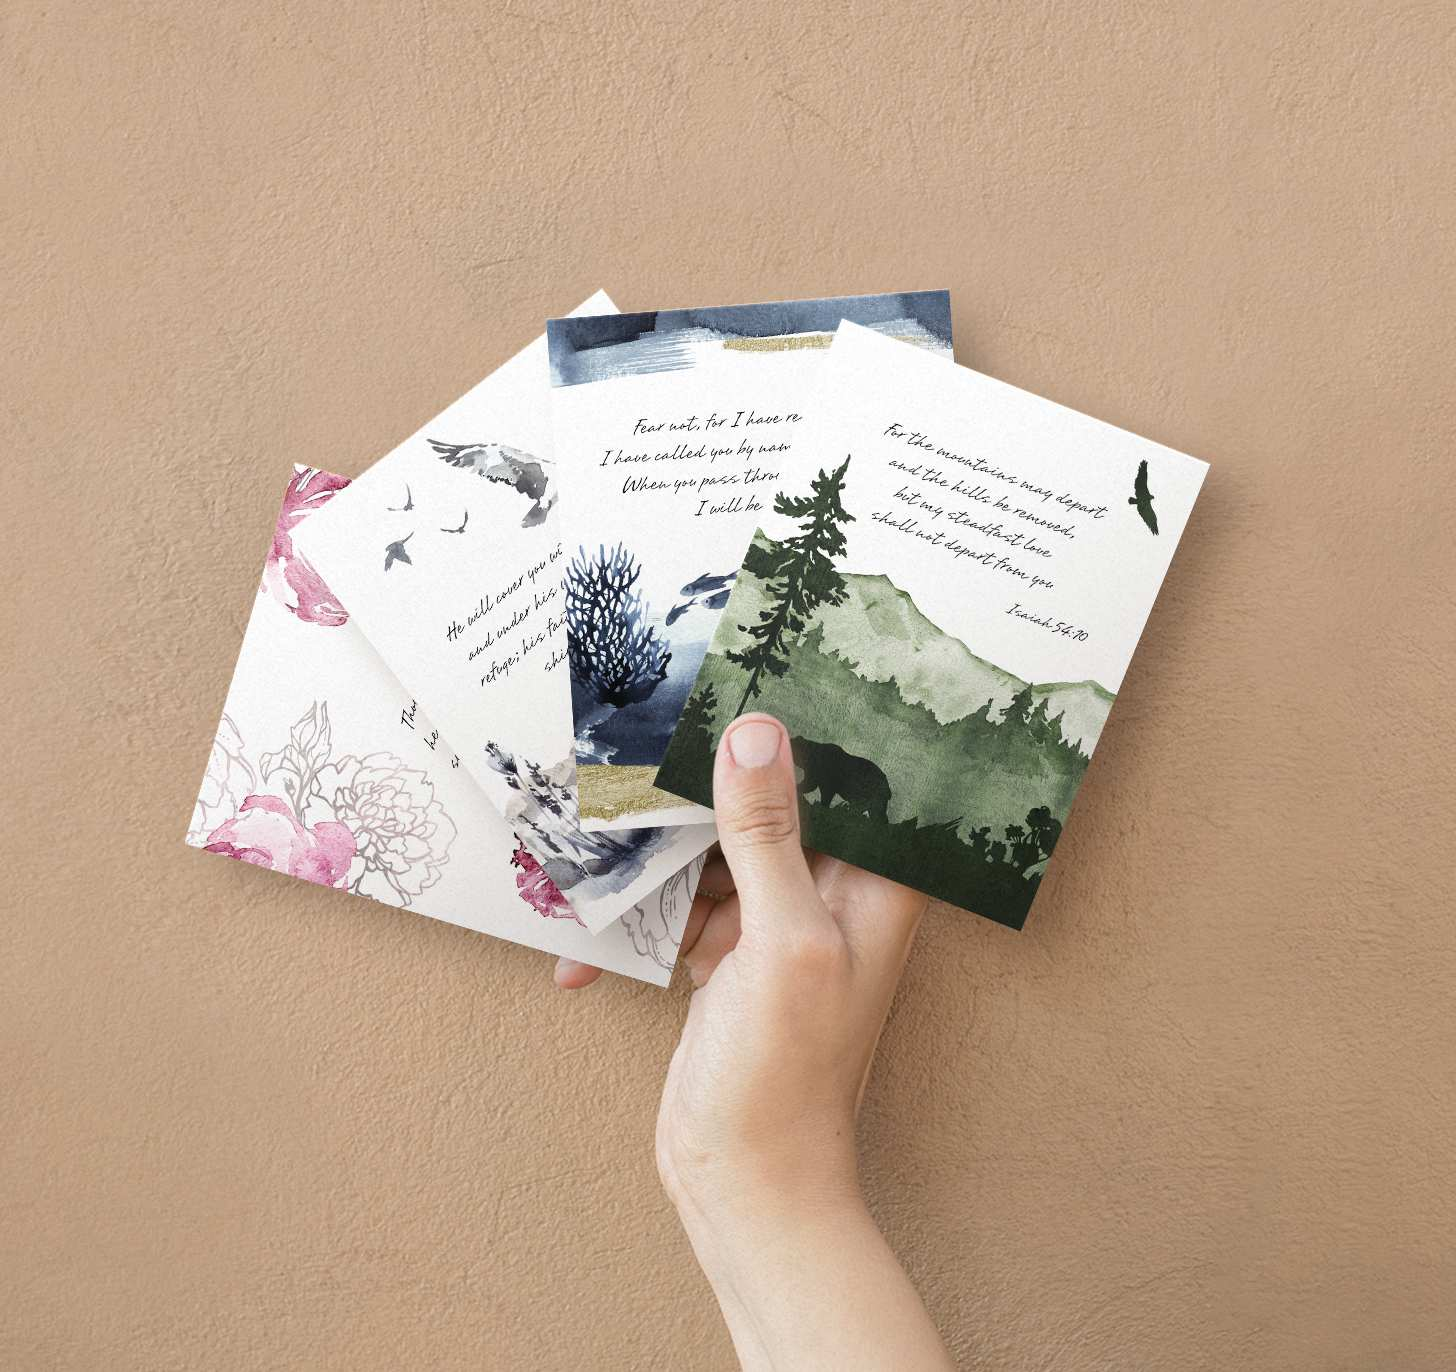 Hands holding four overlapping sympathy cards with pink, green, blue, and gray themes